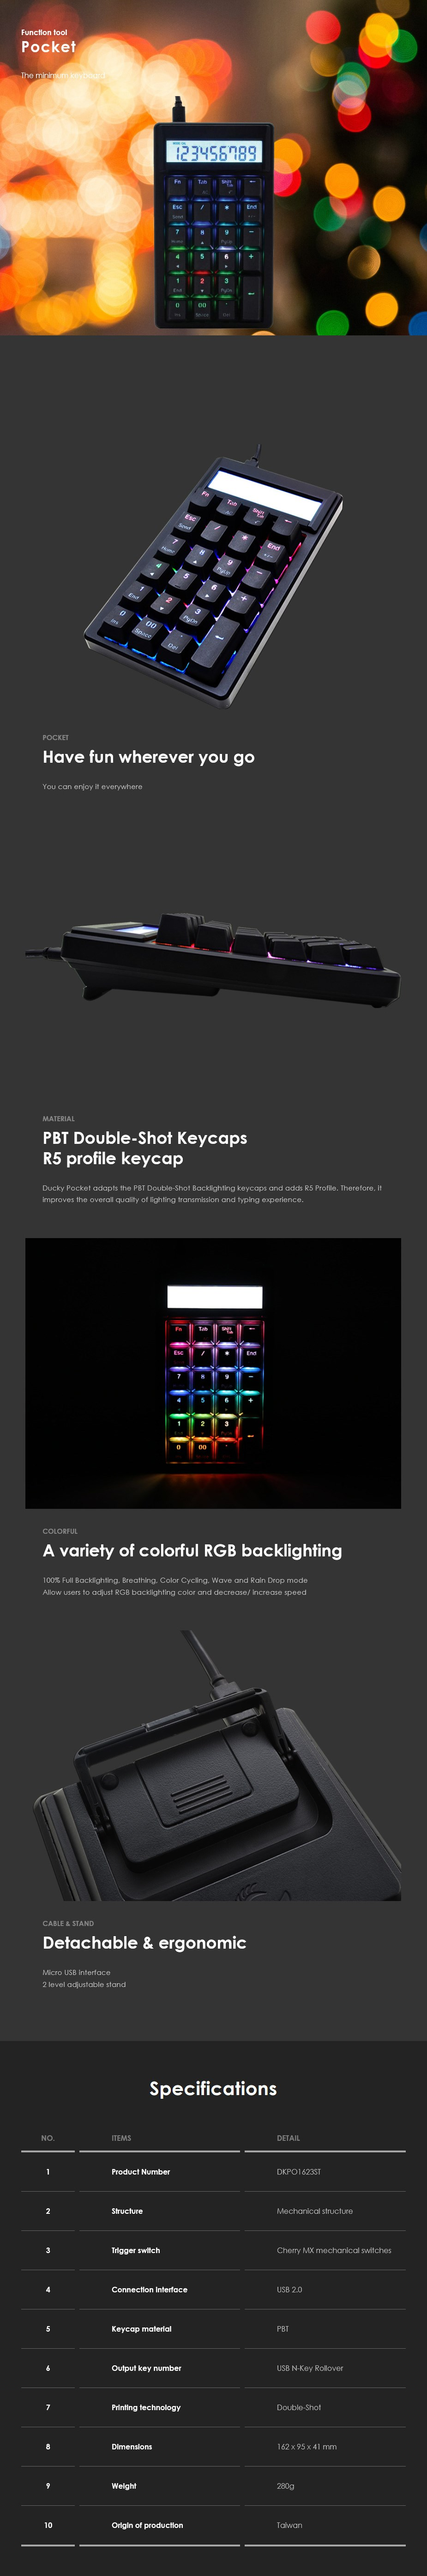 Ducky Pocket RGB LED Mechanical Numpad - Cherry MX Brown - Overview 1